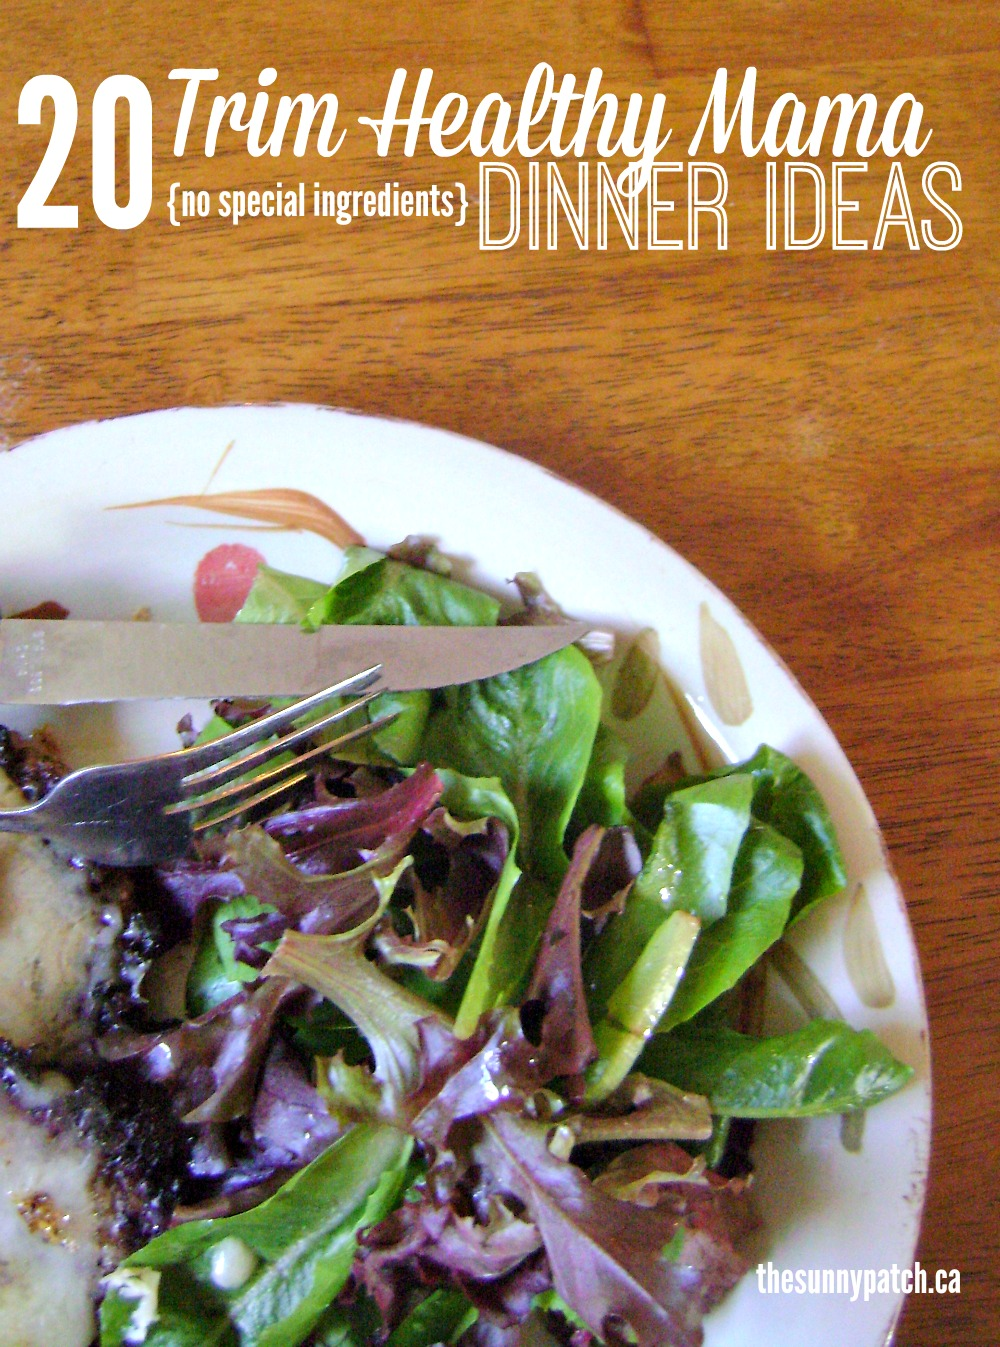 Planning a Trim Healthy Mama dinner is easy with these tips. 20 meal ideas that require no special ingredients!